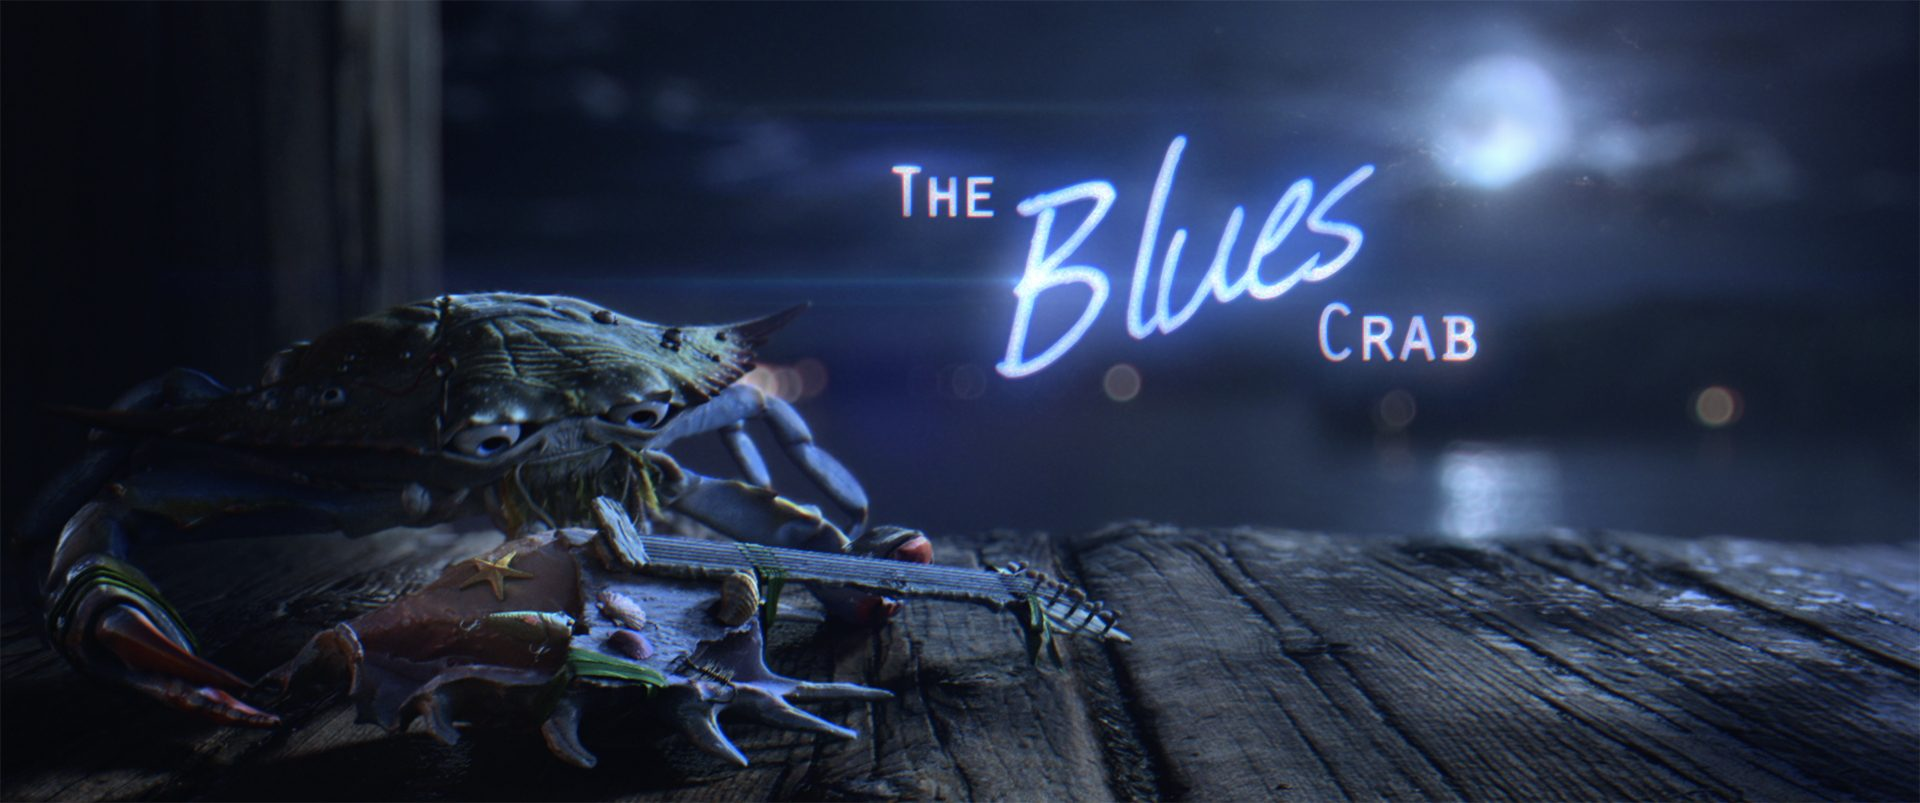 The Blues Crab Poster